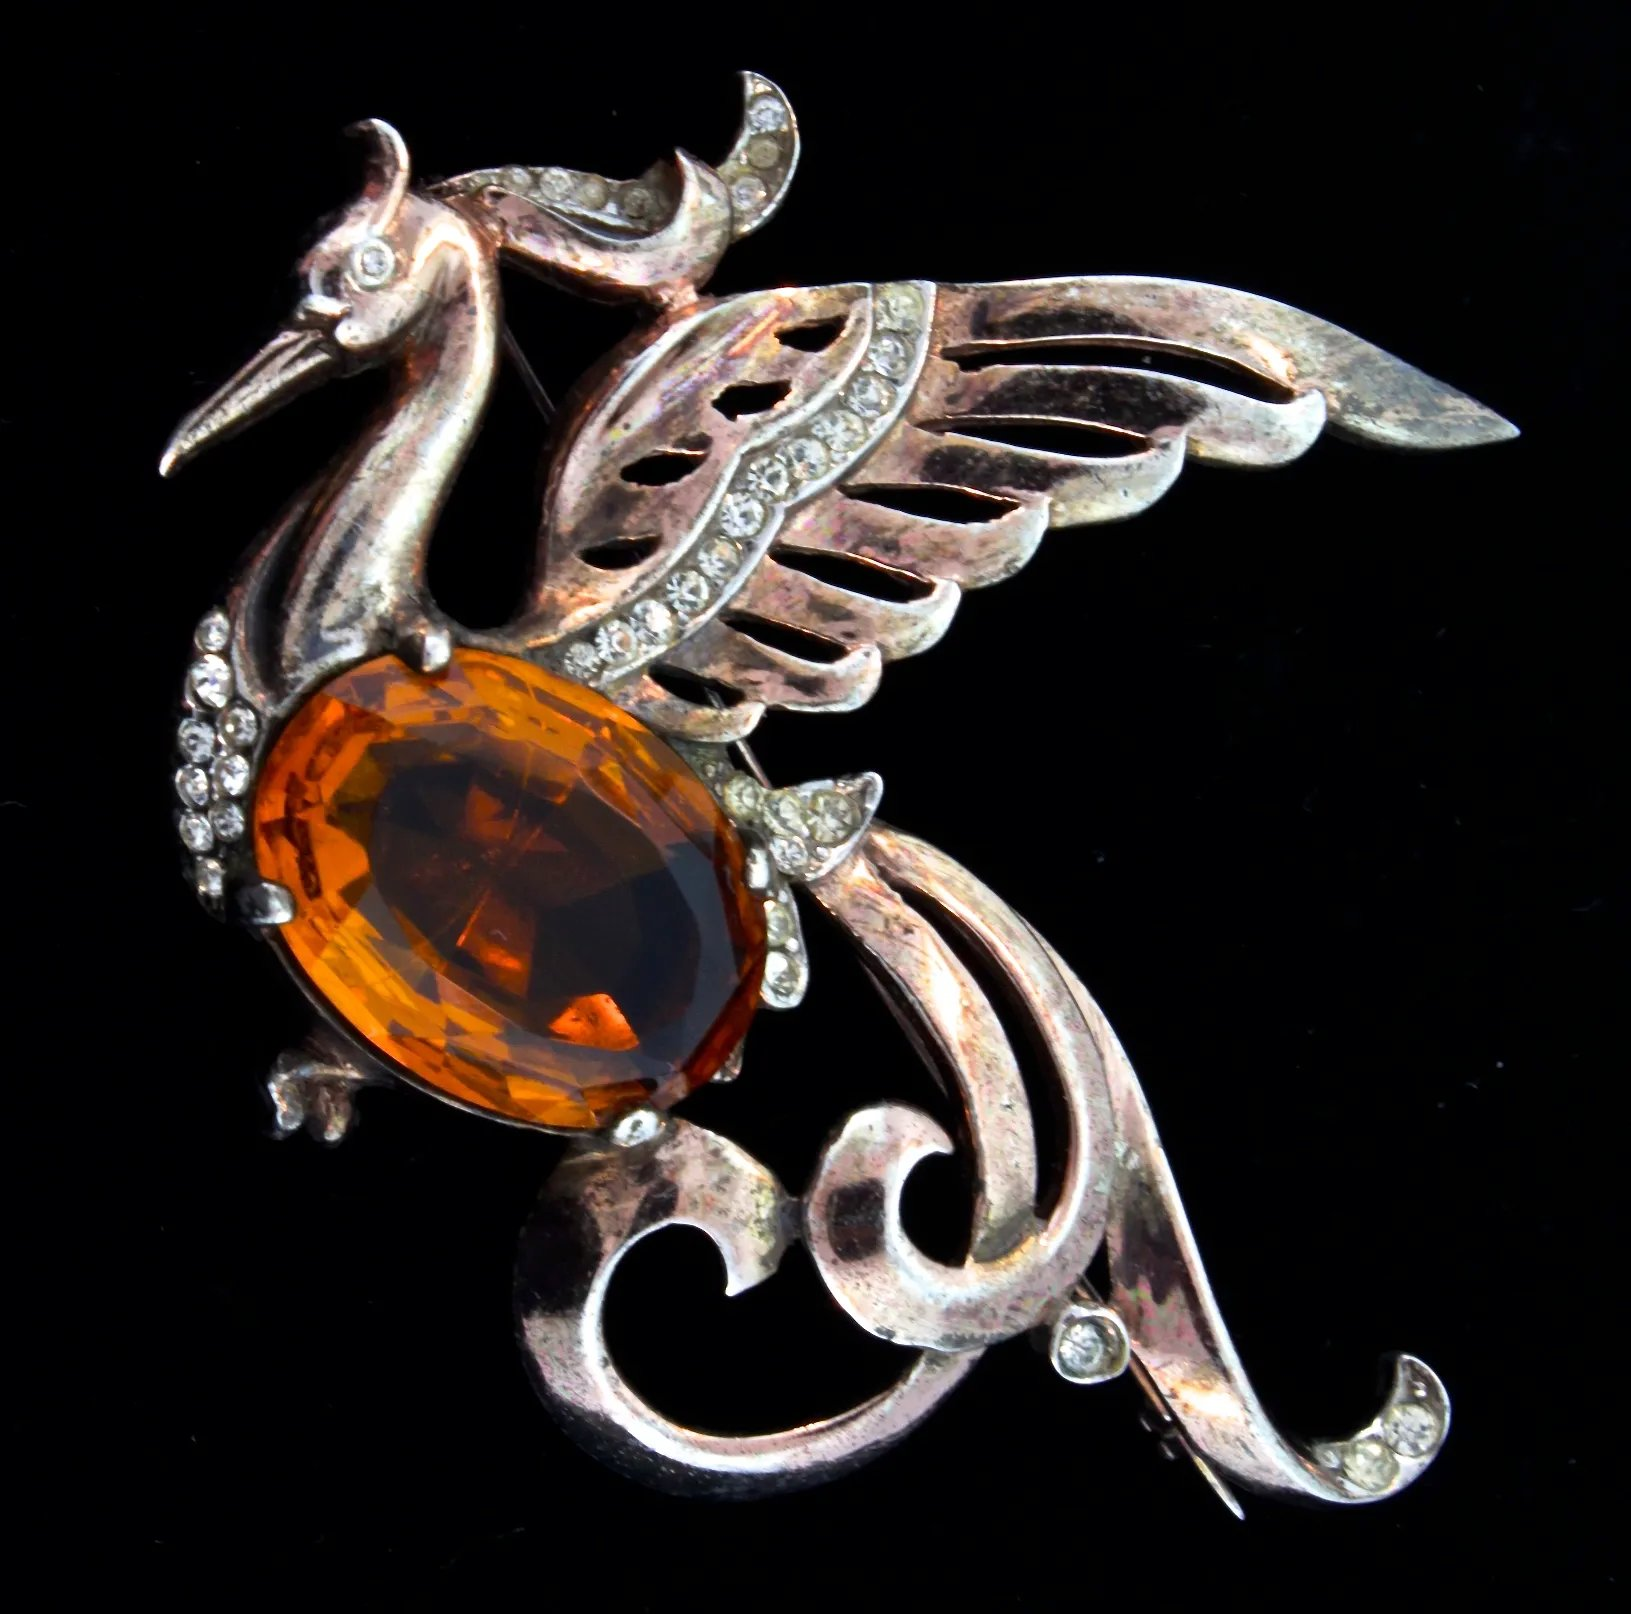 db8b1546dcc Vintage 1940s REJA STERLING Rhinestone Peacock Fantasy Bird Figural Brooch  Pin. Click to expand